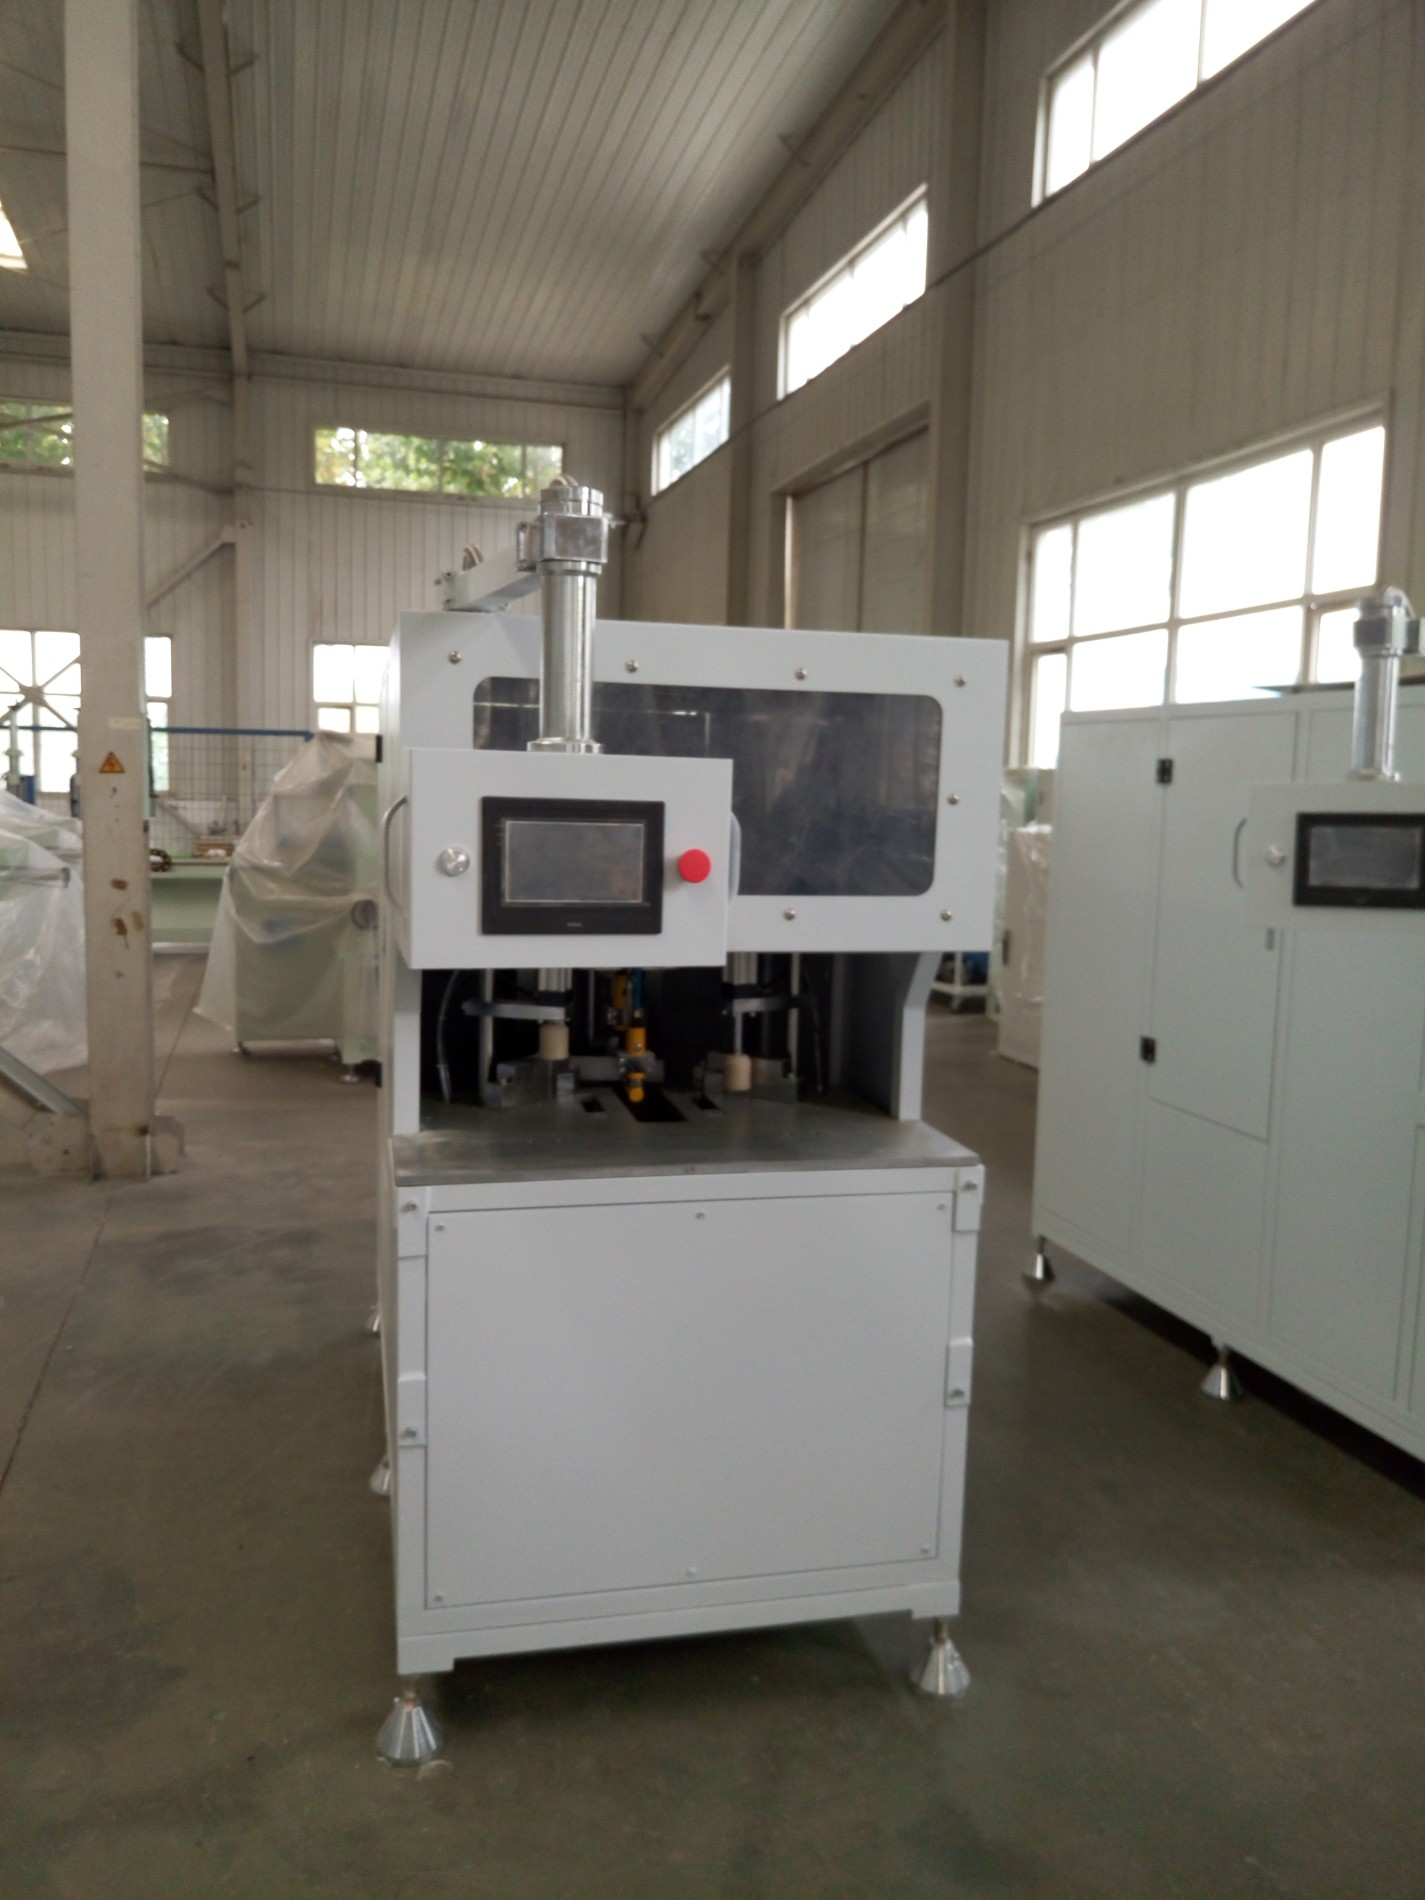 High quality PVC High Speed Corner Cleaning Machine Quotes,China PVC High Speed Corner Cleaning Machine Factory,PVC High Speed Corner Cleaning Machine Purchasing